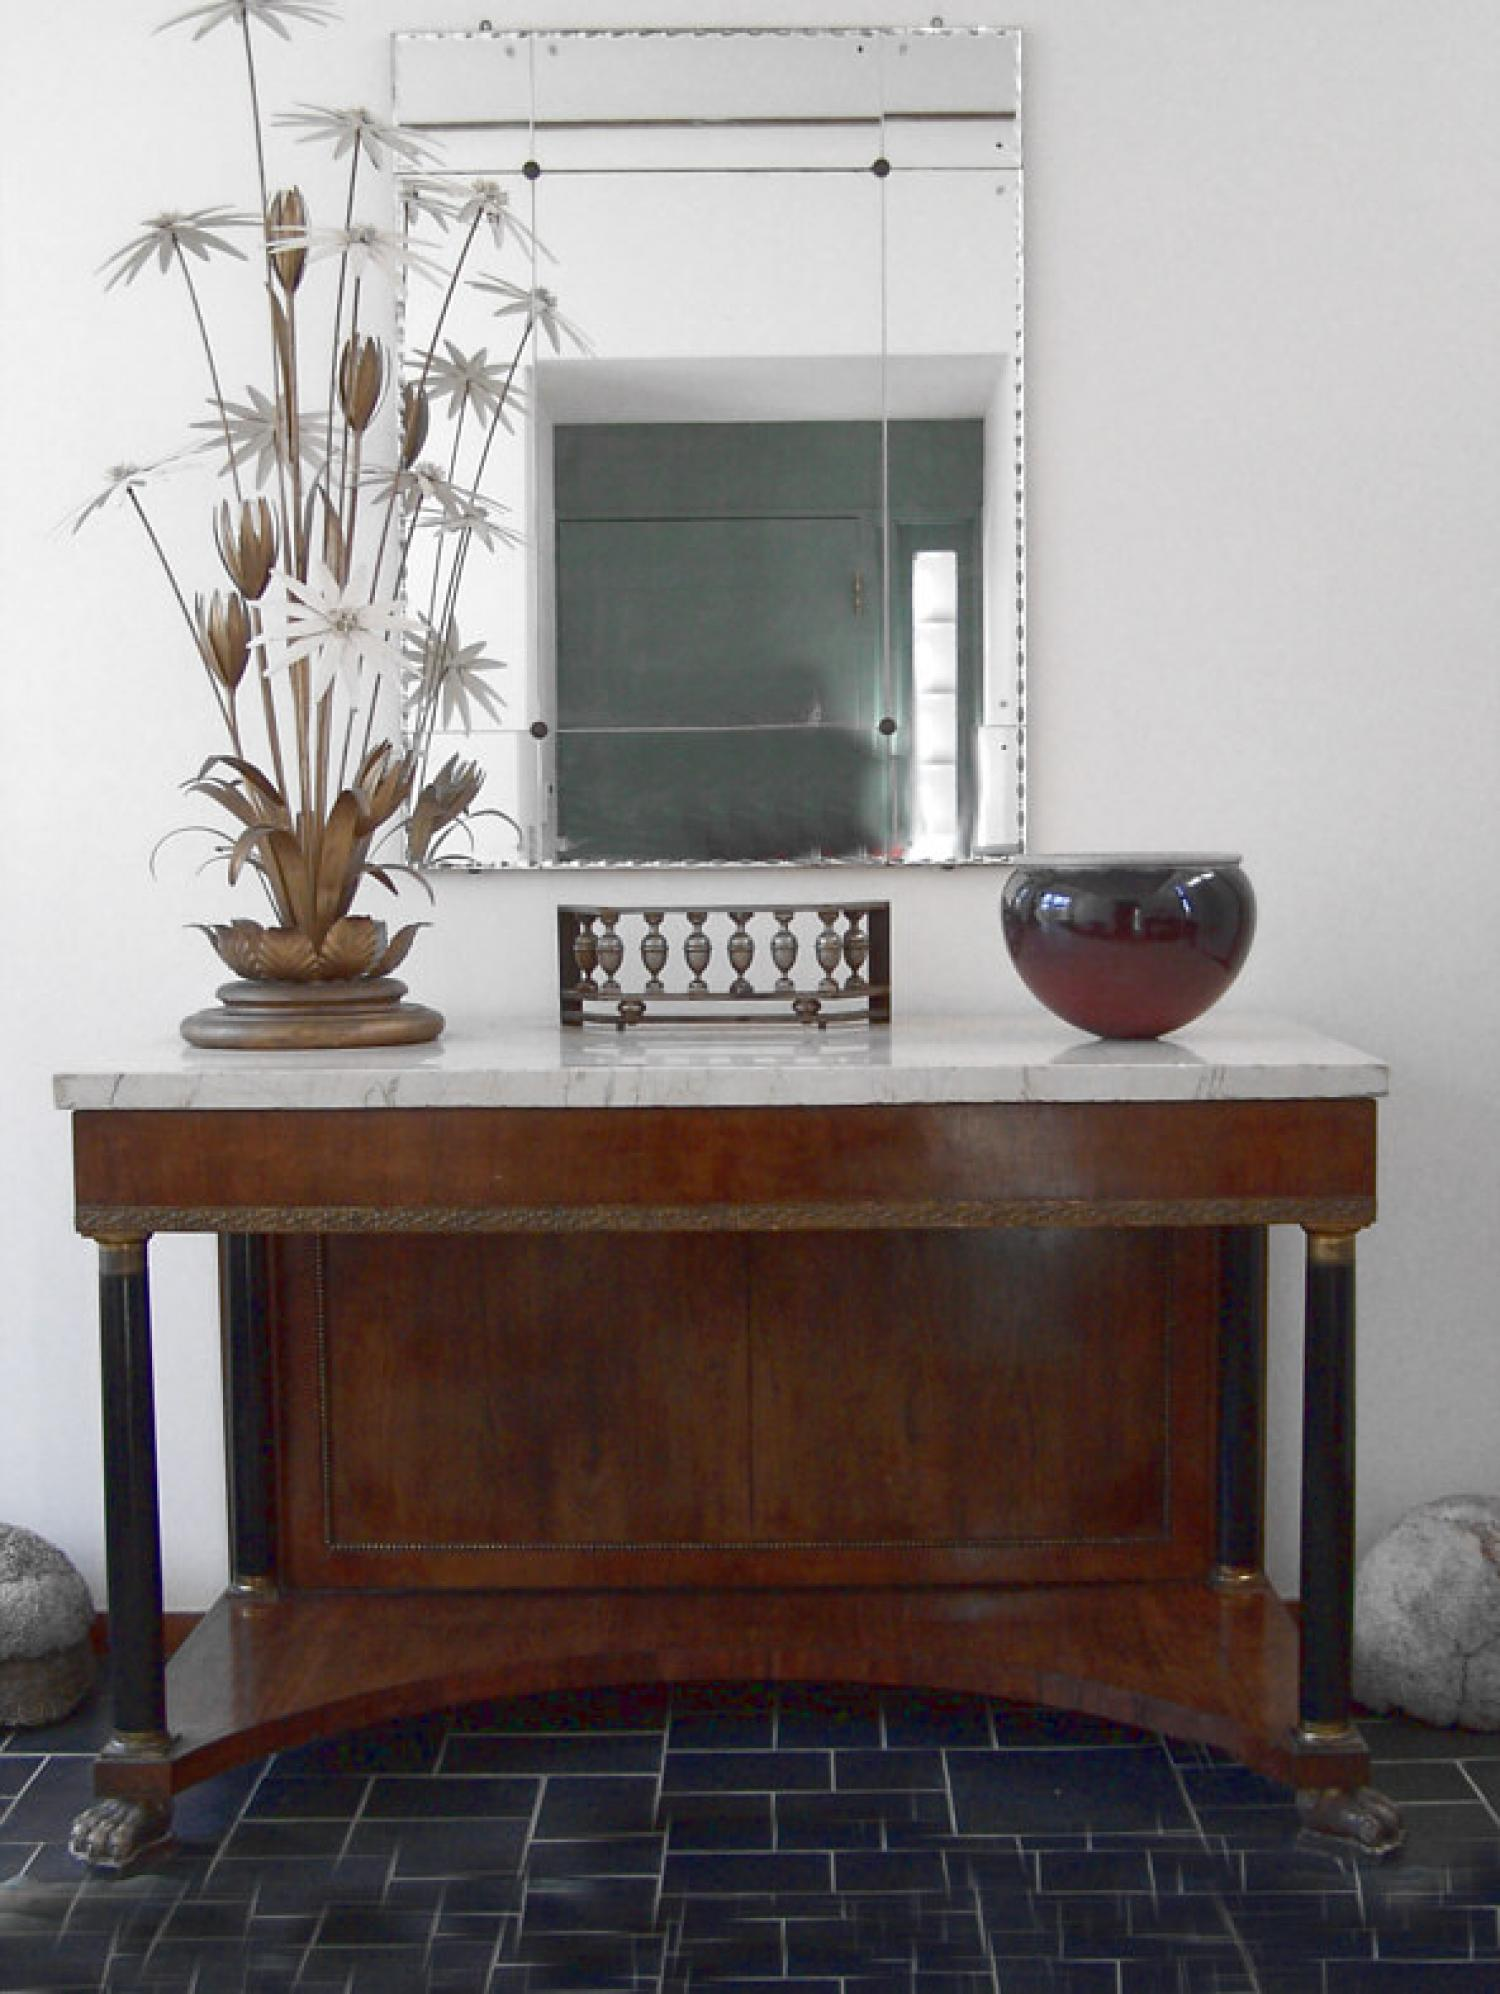 18th C Italian marble top console with claw feet